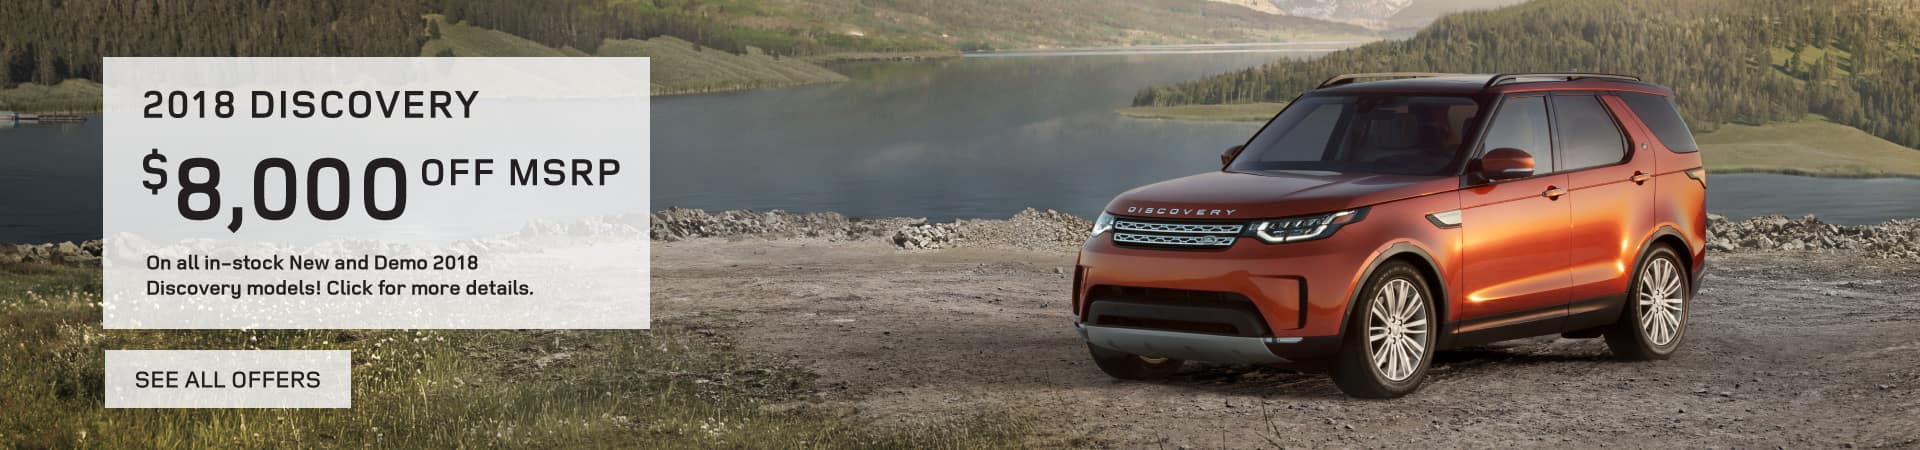 Autobahn Land Rover - 2018 Discovery Models $8,000 off MSRP